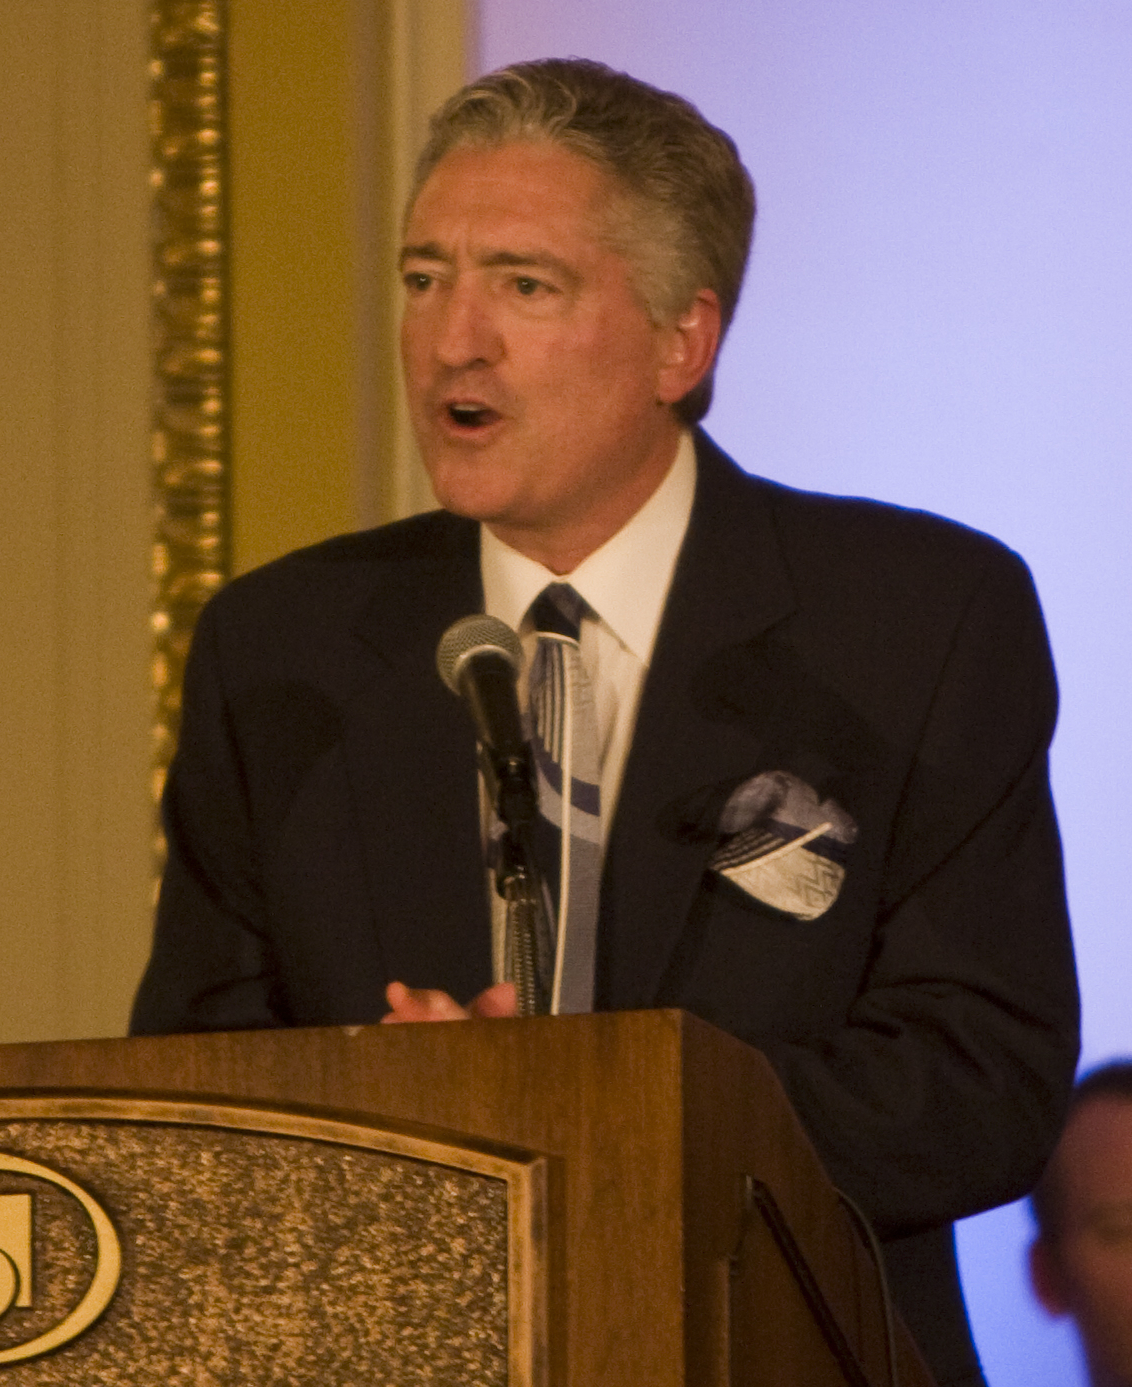 Hughes at the 2011 Cubs Convention